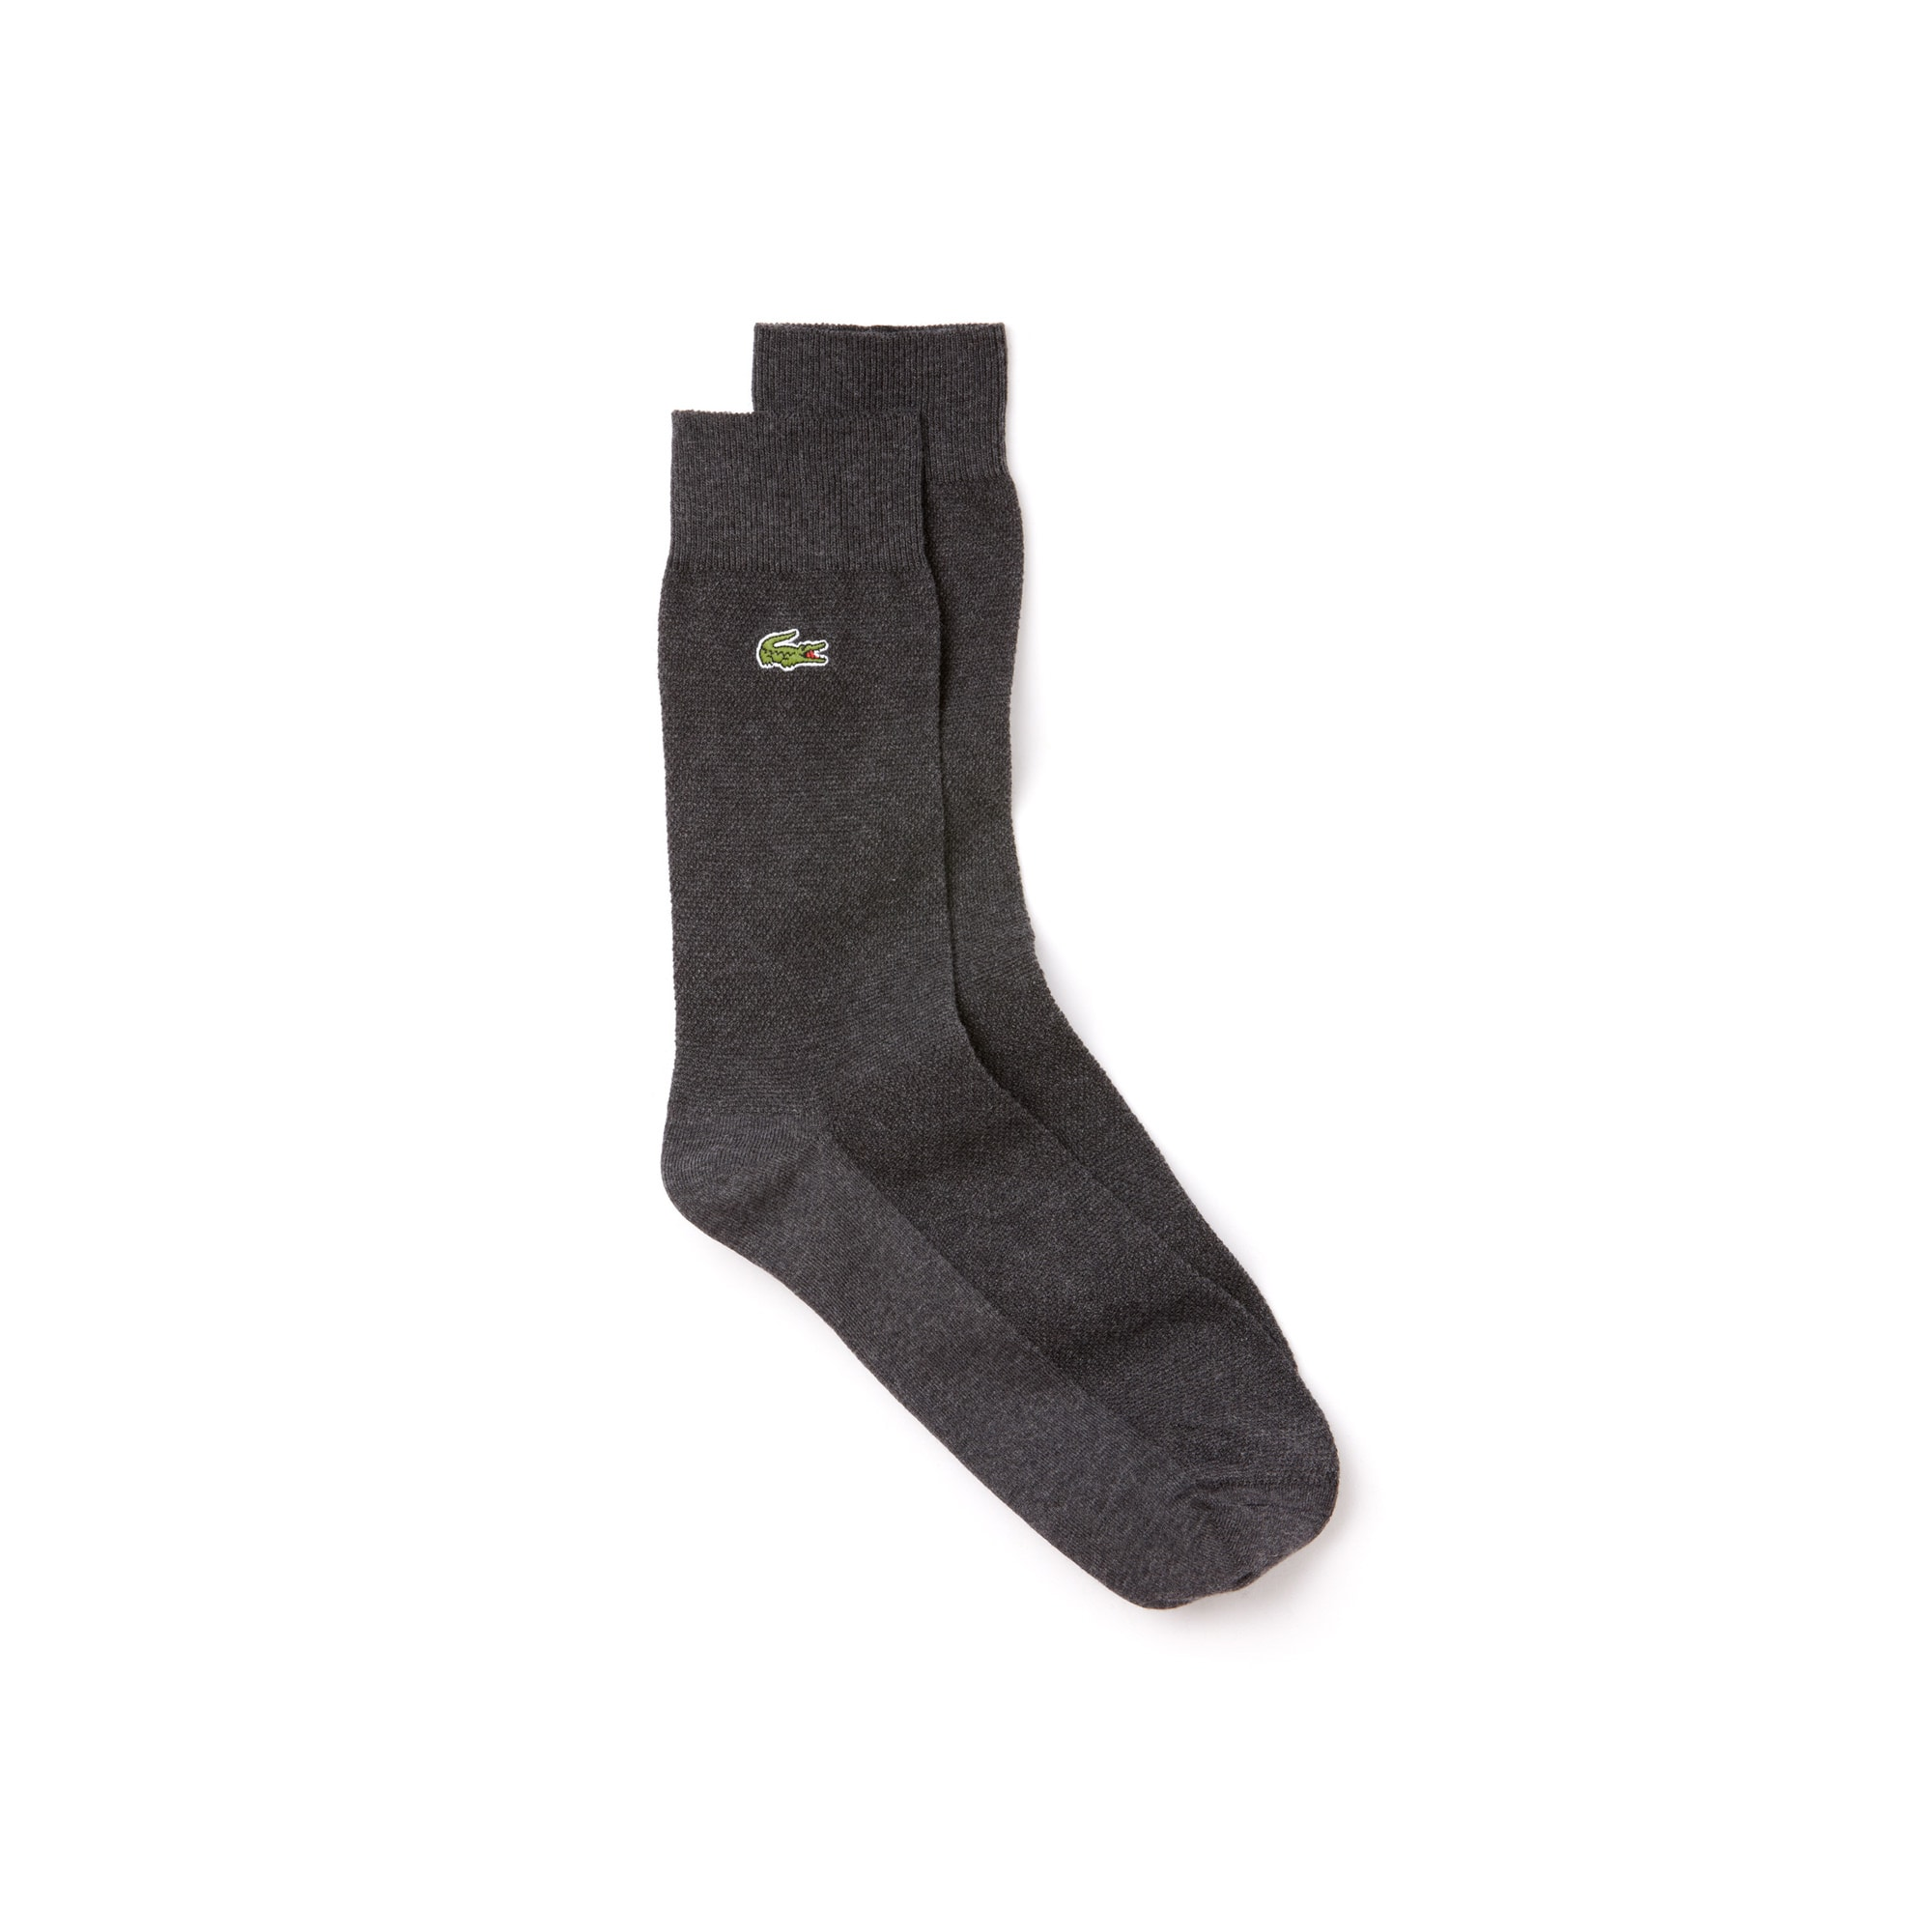 Men's Socks in stretch cotton jersey